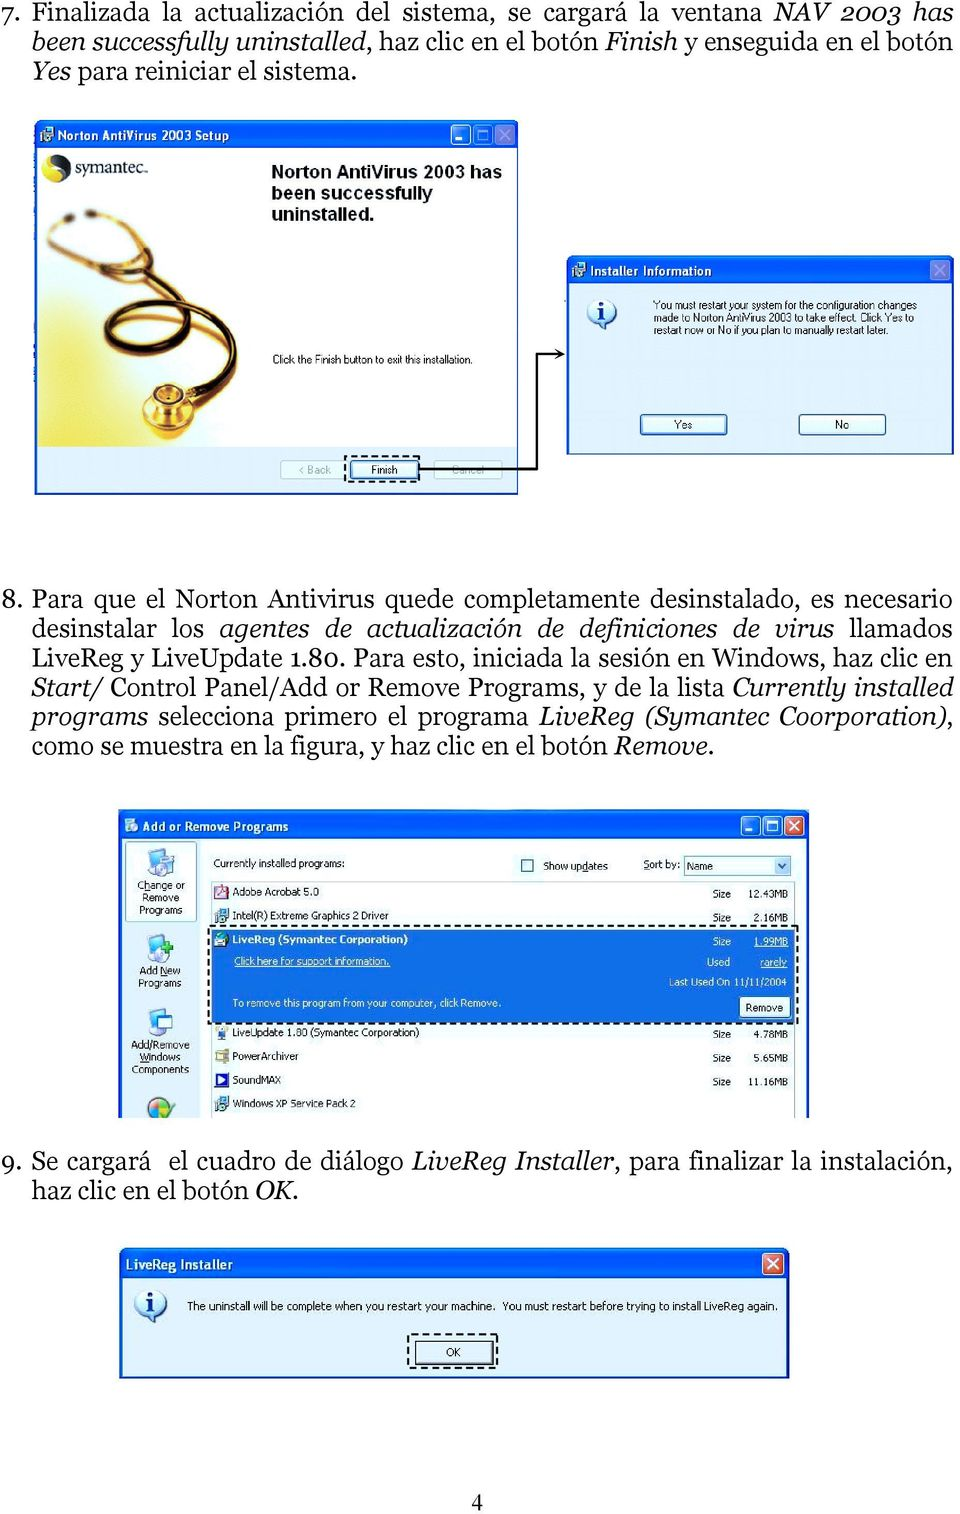 80. Para esto, iniciada la sesión en Windows, haz clic en Start/ Control Panel/Add or Remove Programs, y de la lista Currently installed programs selecciona primero el programa LiveReg